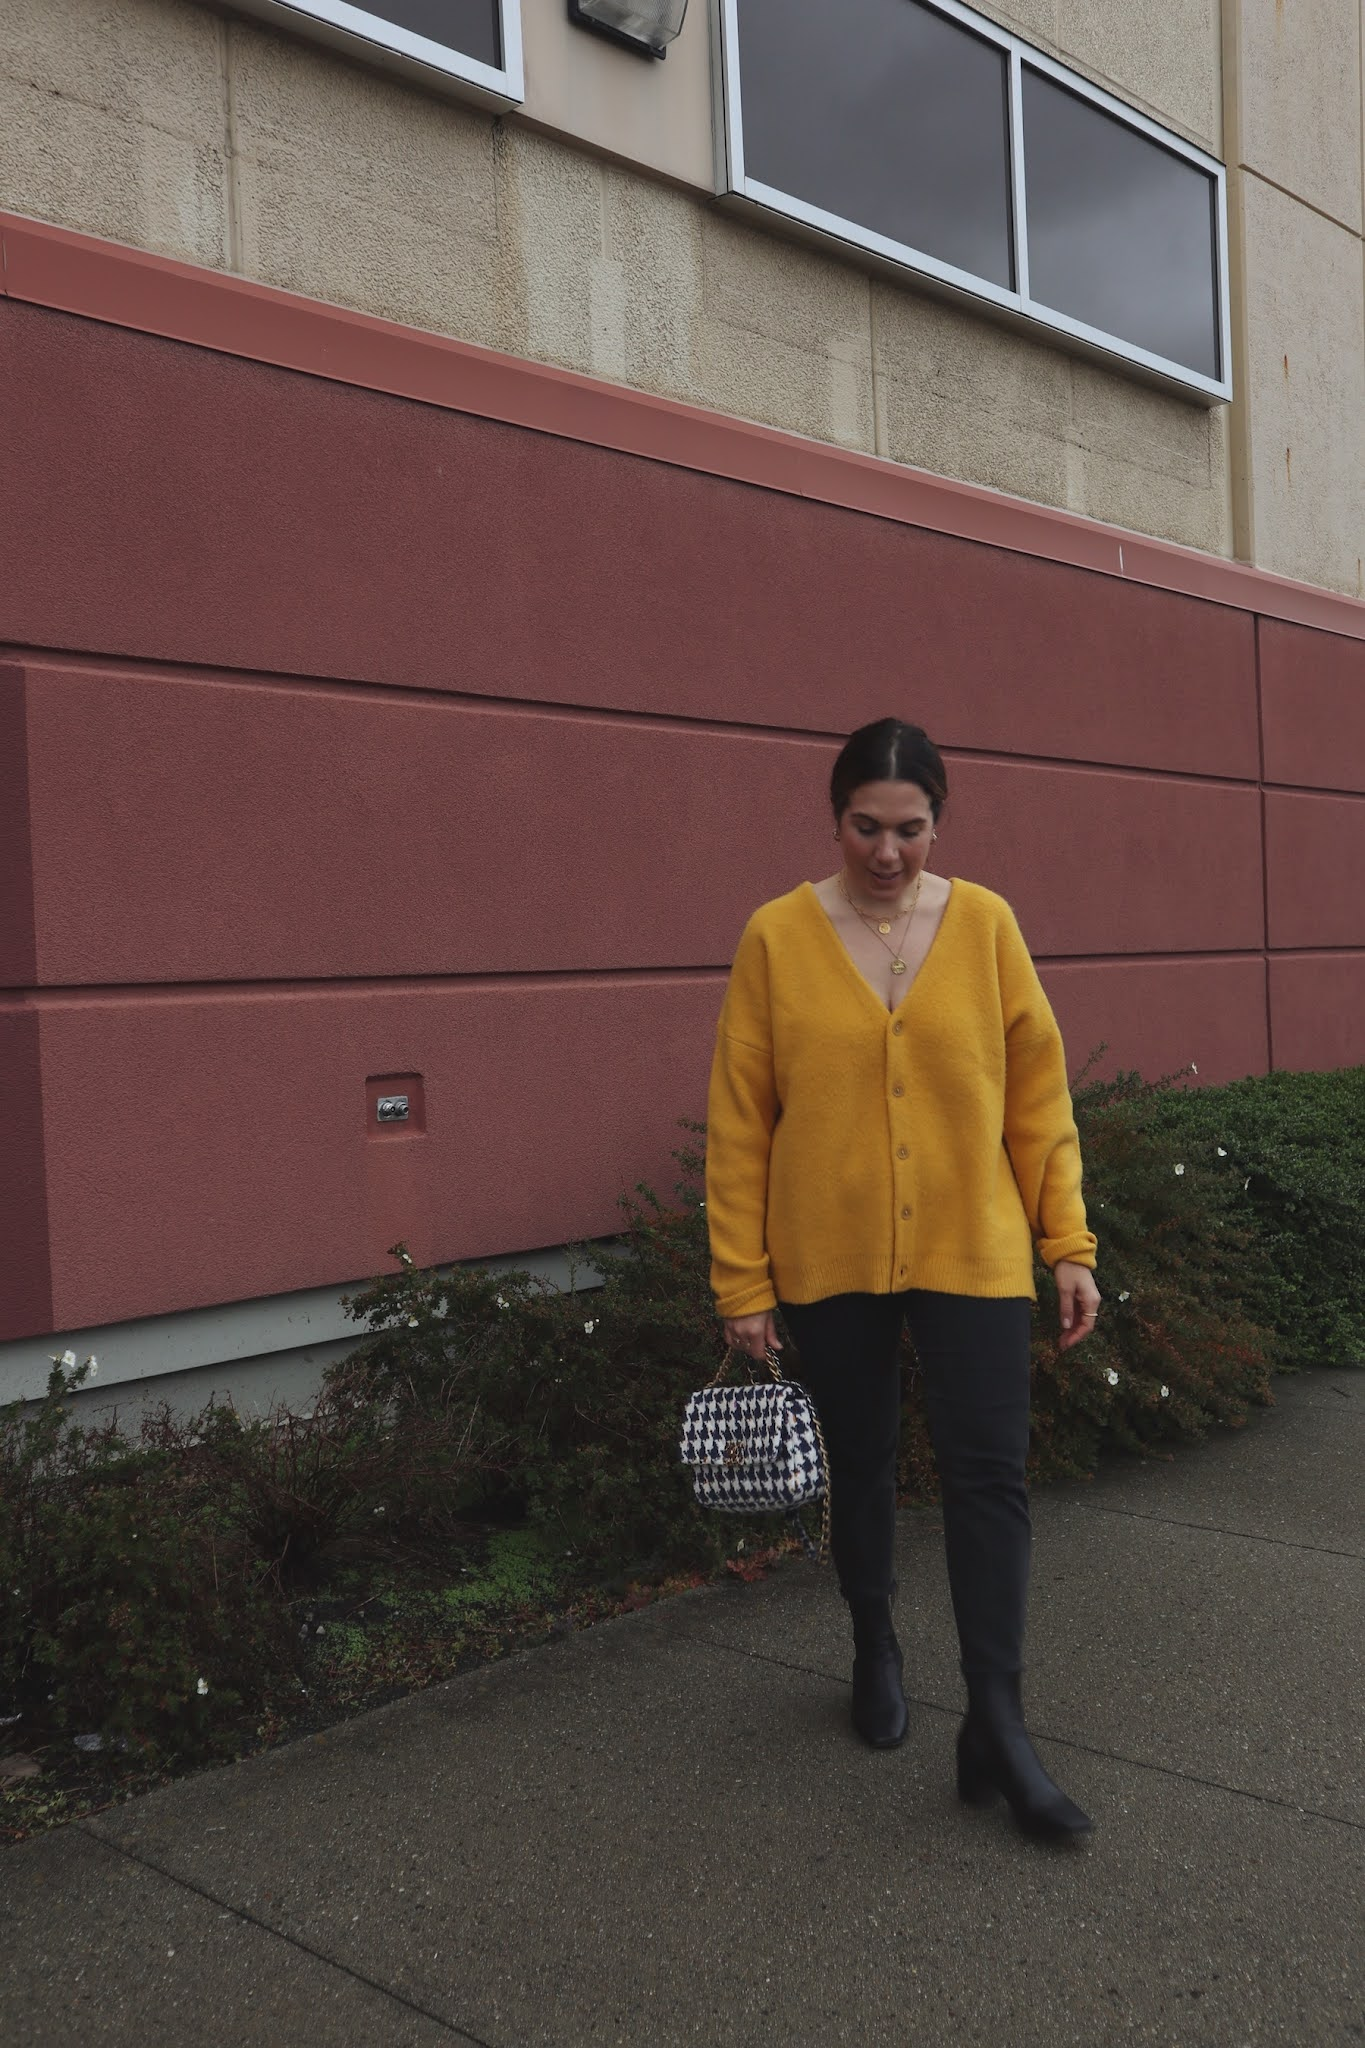 Levi's yellow cardigan outfit chanel 19 handbag yellow sweater outfit